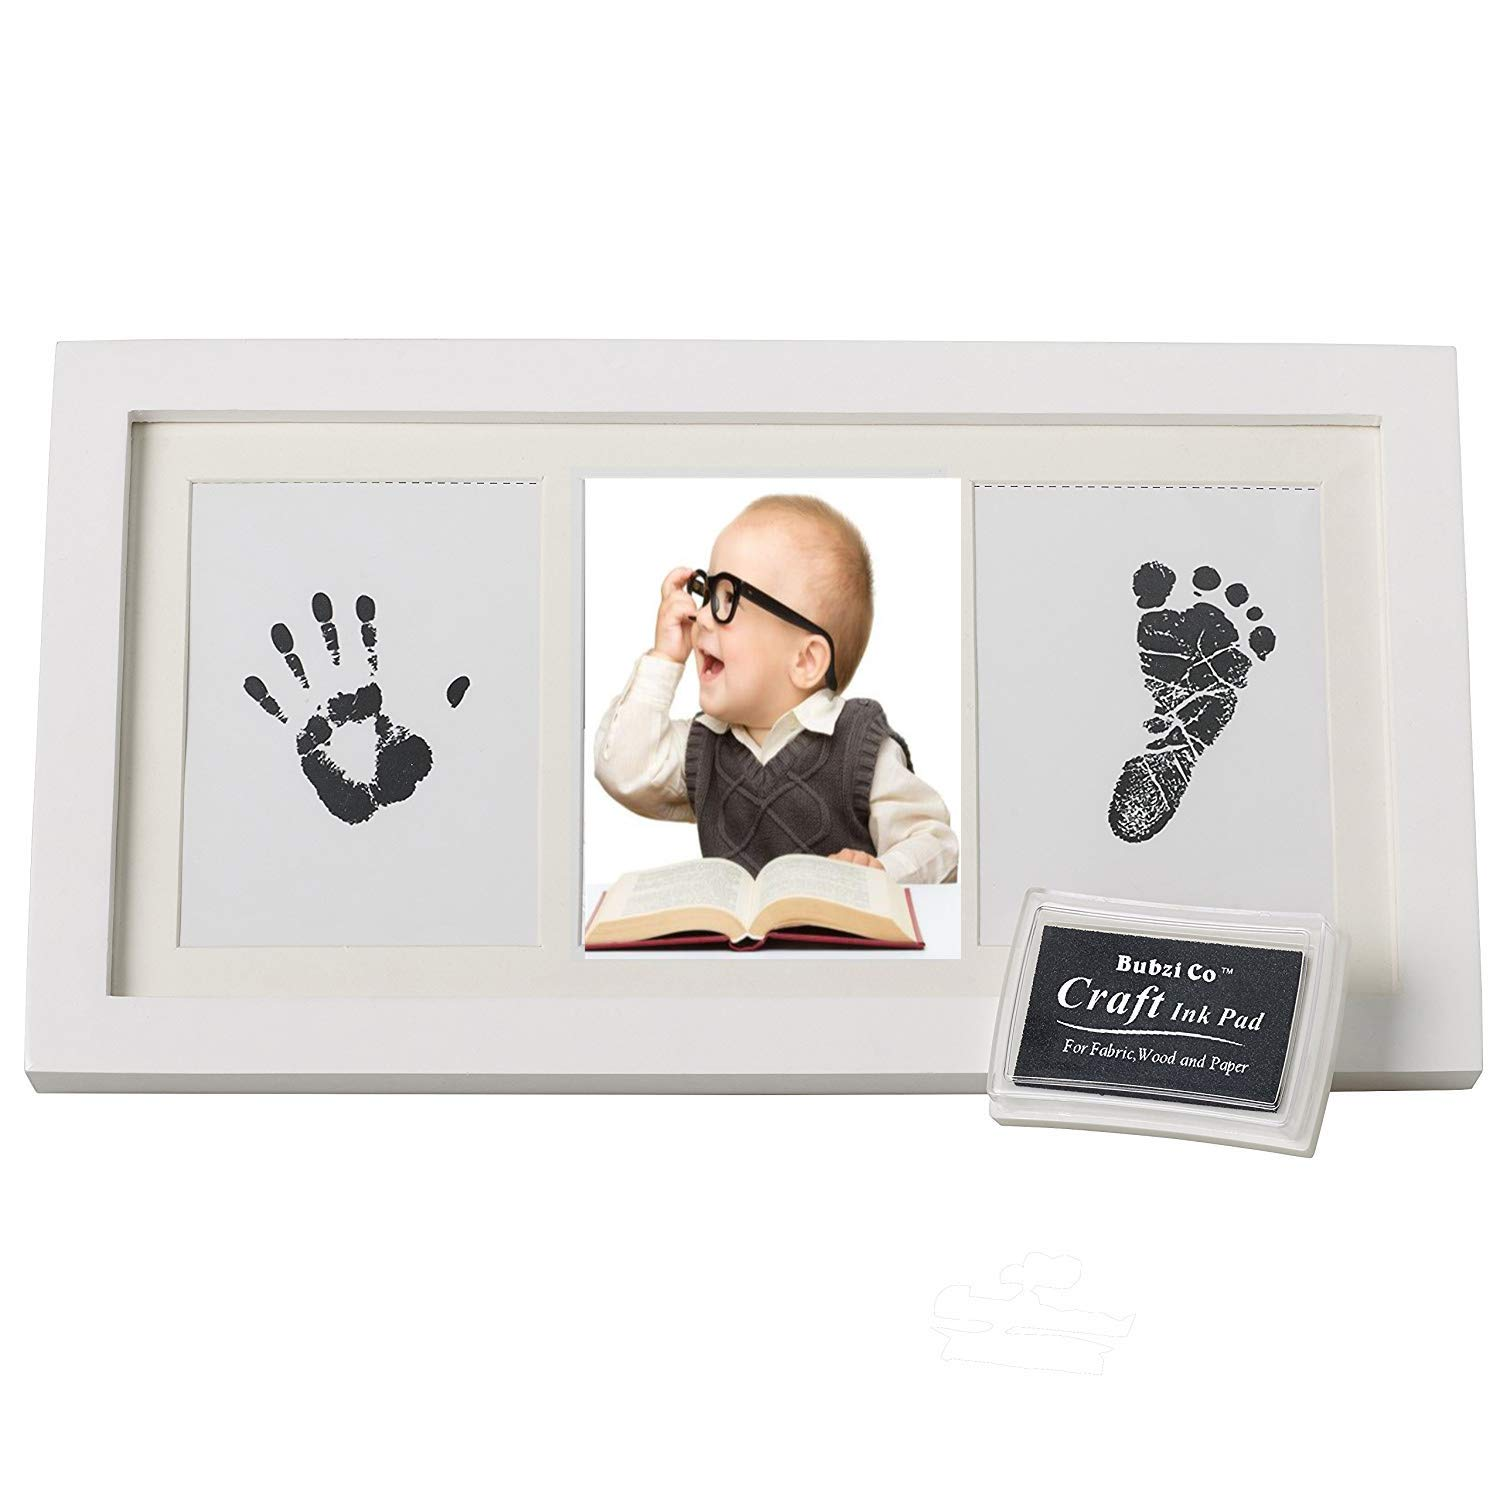 Beautiful Baby Hand and Footprint Photo Frame Kit,Babyprints Paper /& Ink Pad Memorable Keepsakes for Baby Shower Gifts